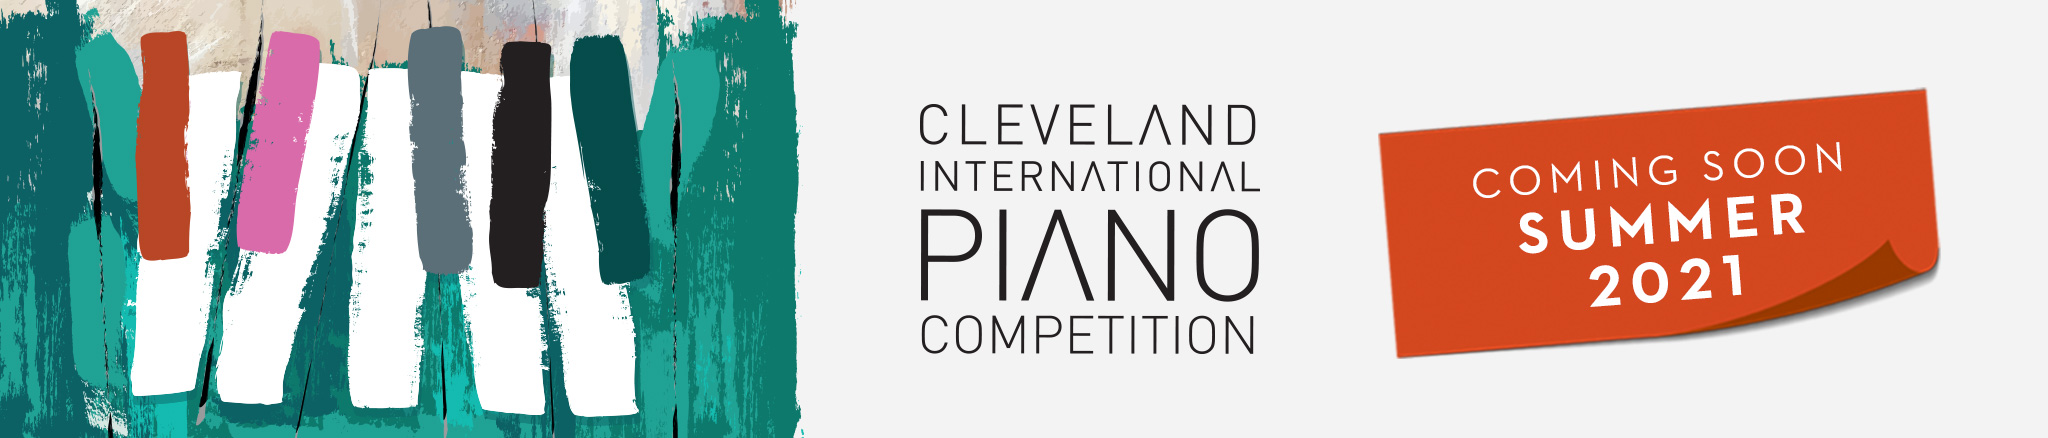 2021 Cleveland International Piano Competition